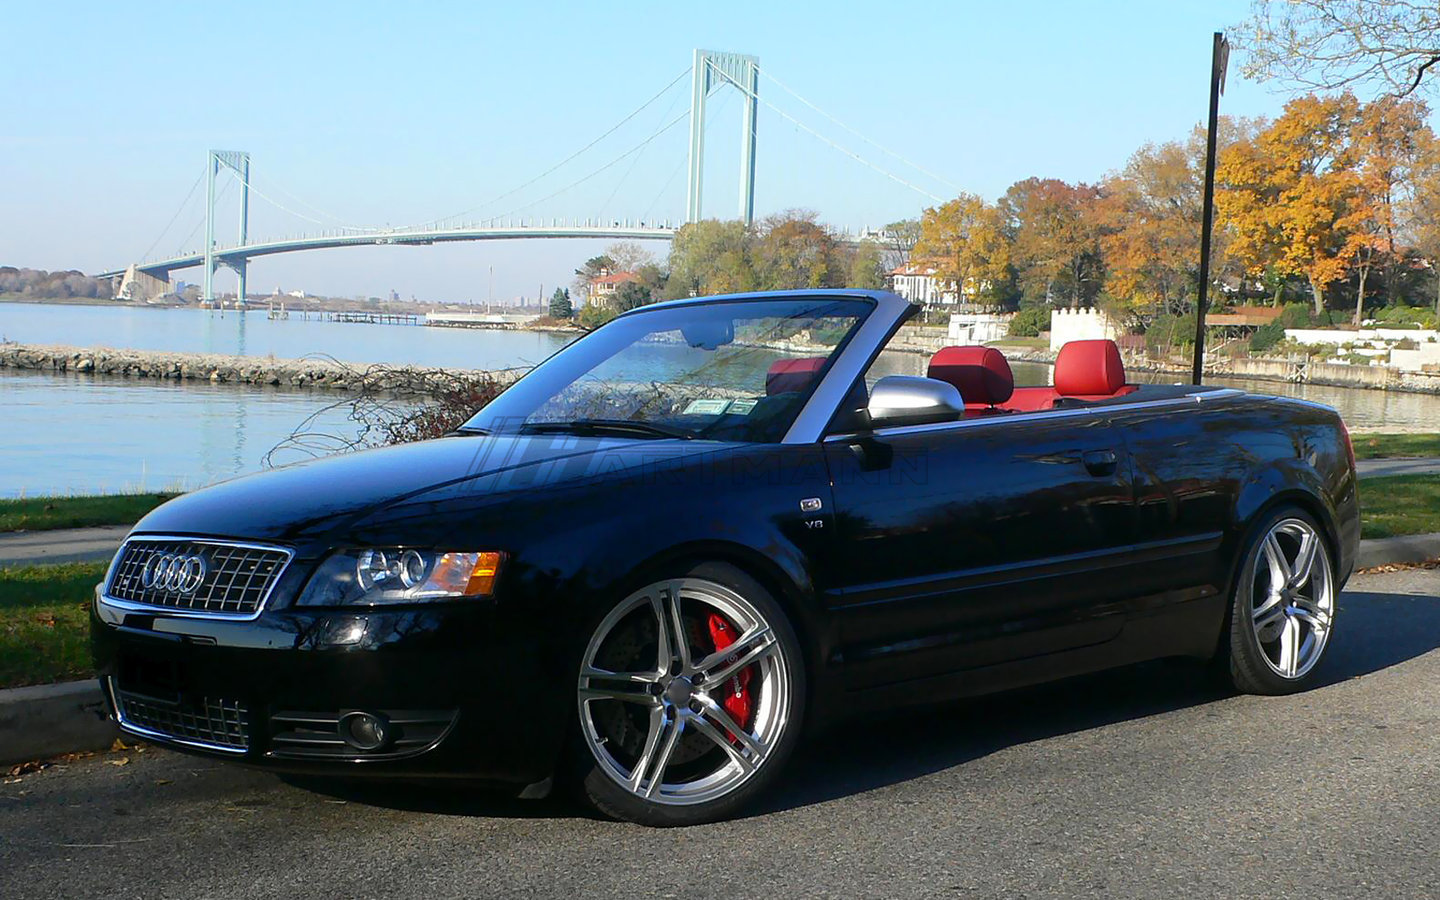 Volvo V70 Cabrio >> Audi S4 Cabriolet technical details, history, photos on Better Parts LTD